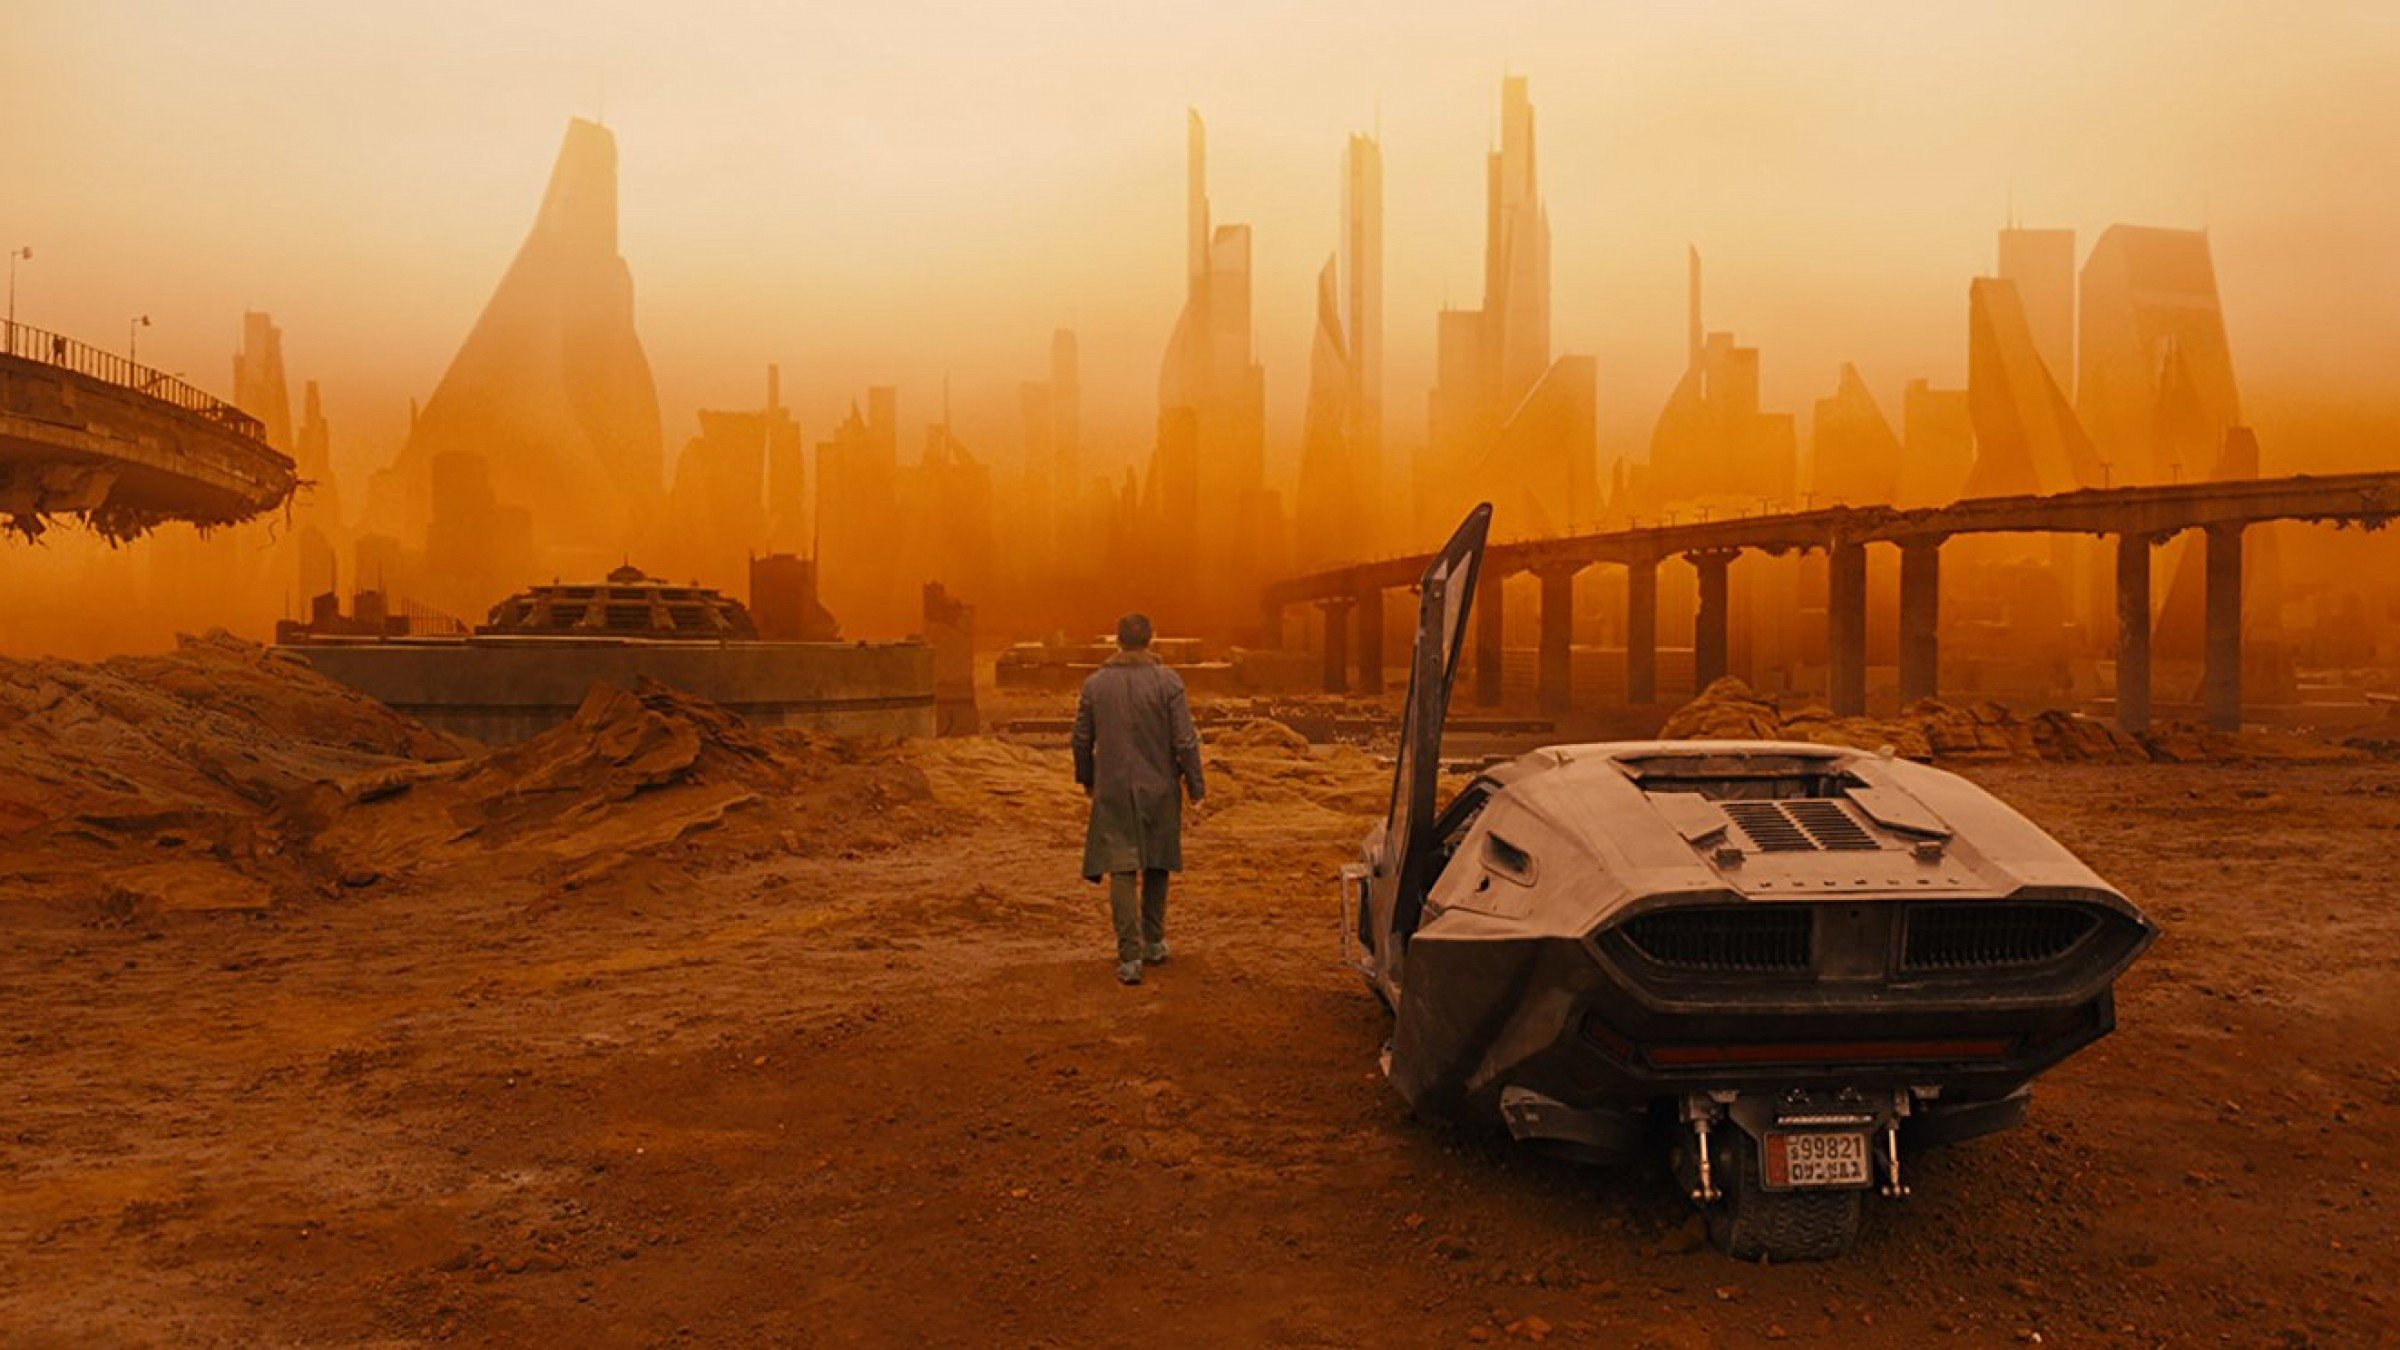 Watch: Explore the Epic 'Blade Runner 2049' Set and Props in